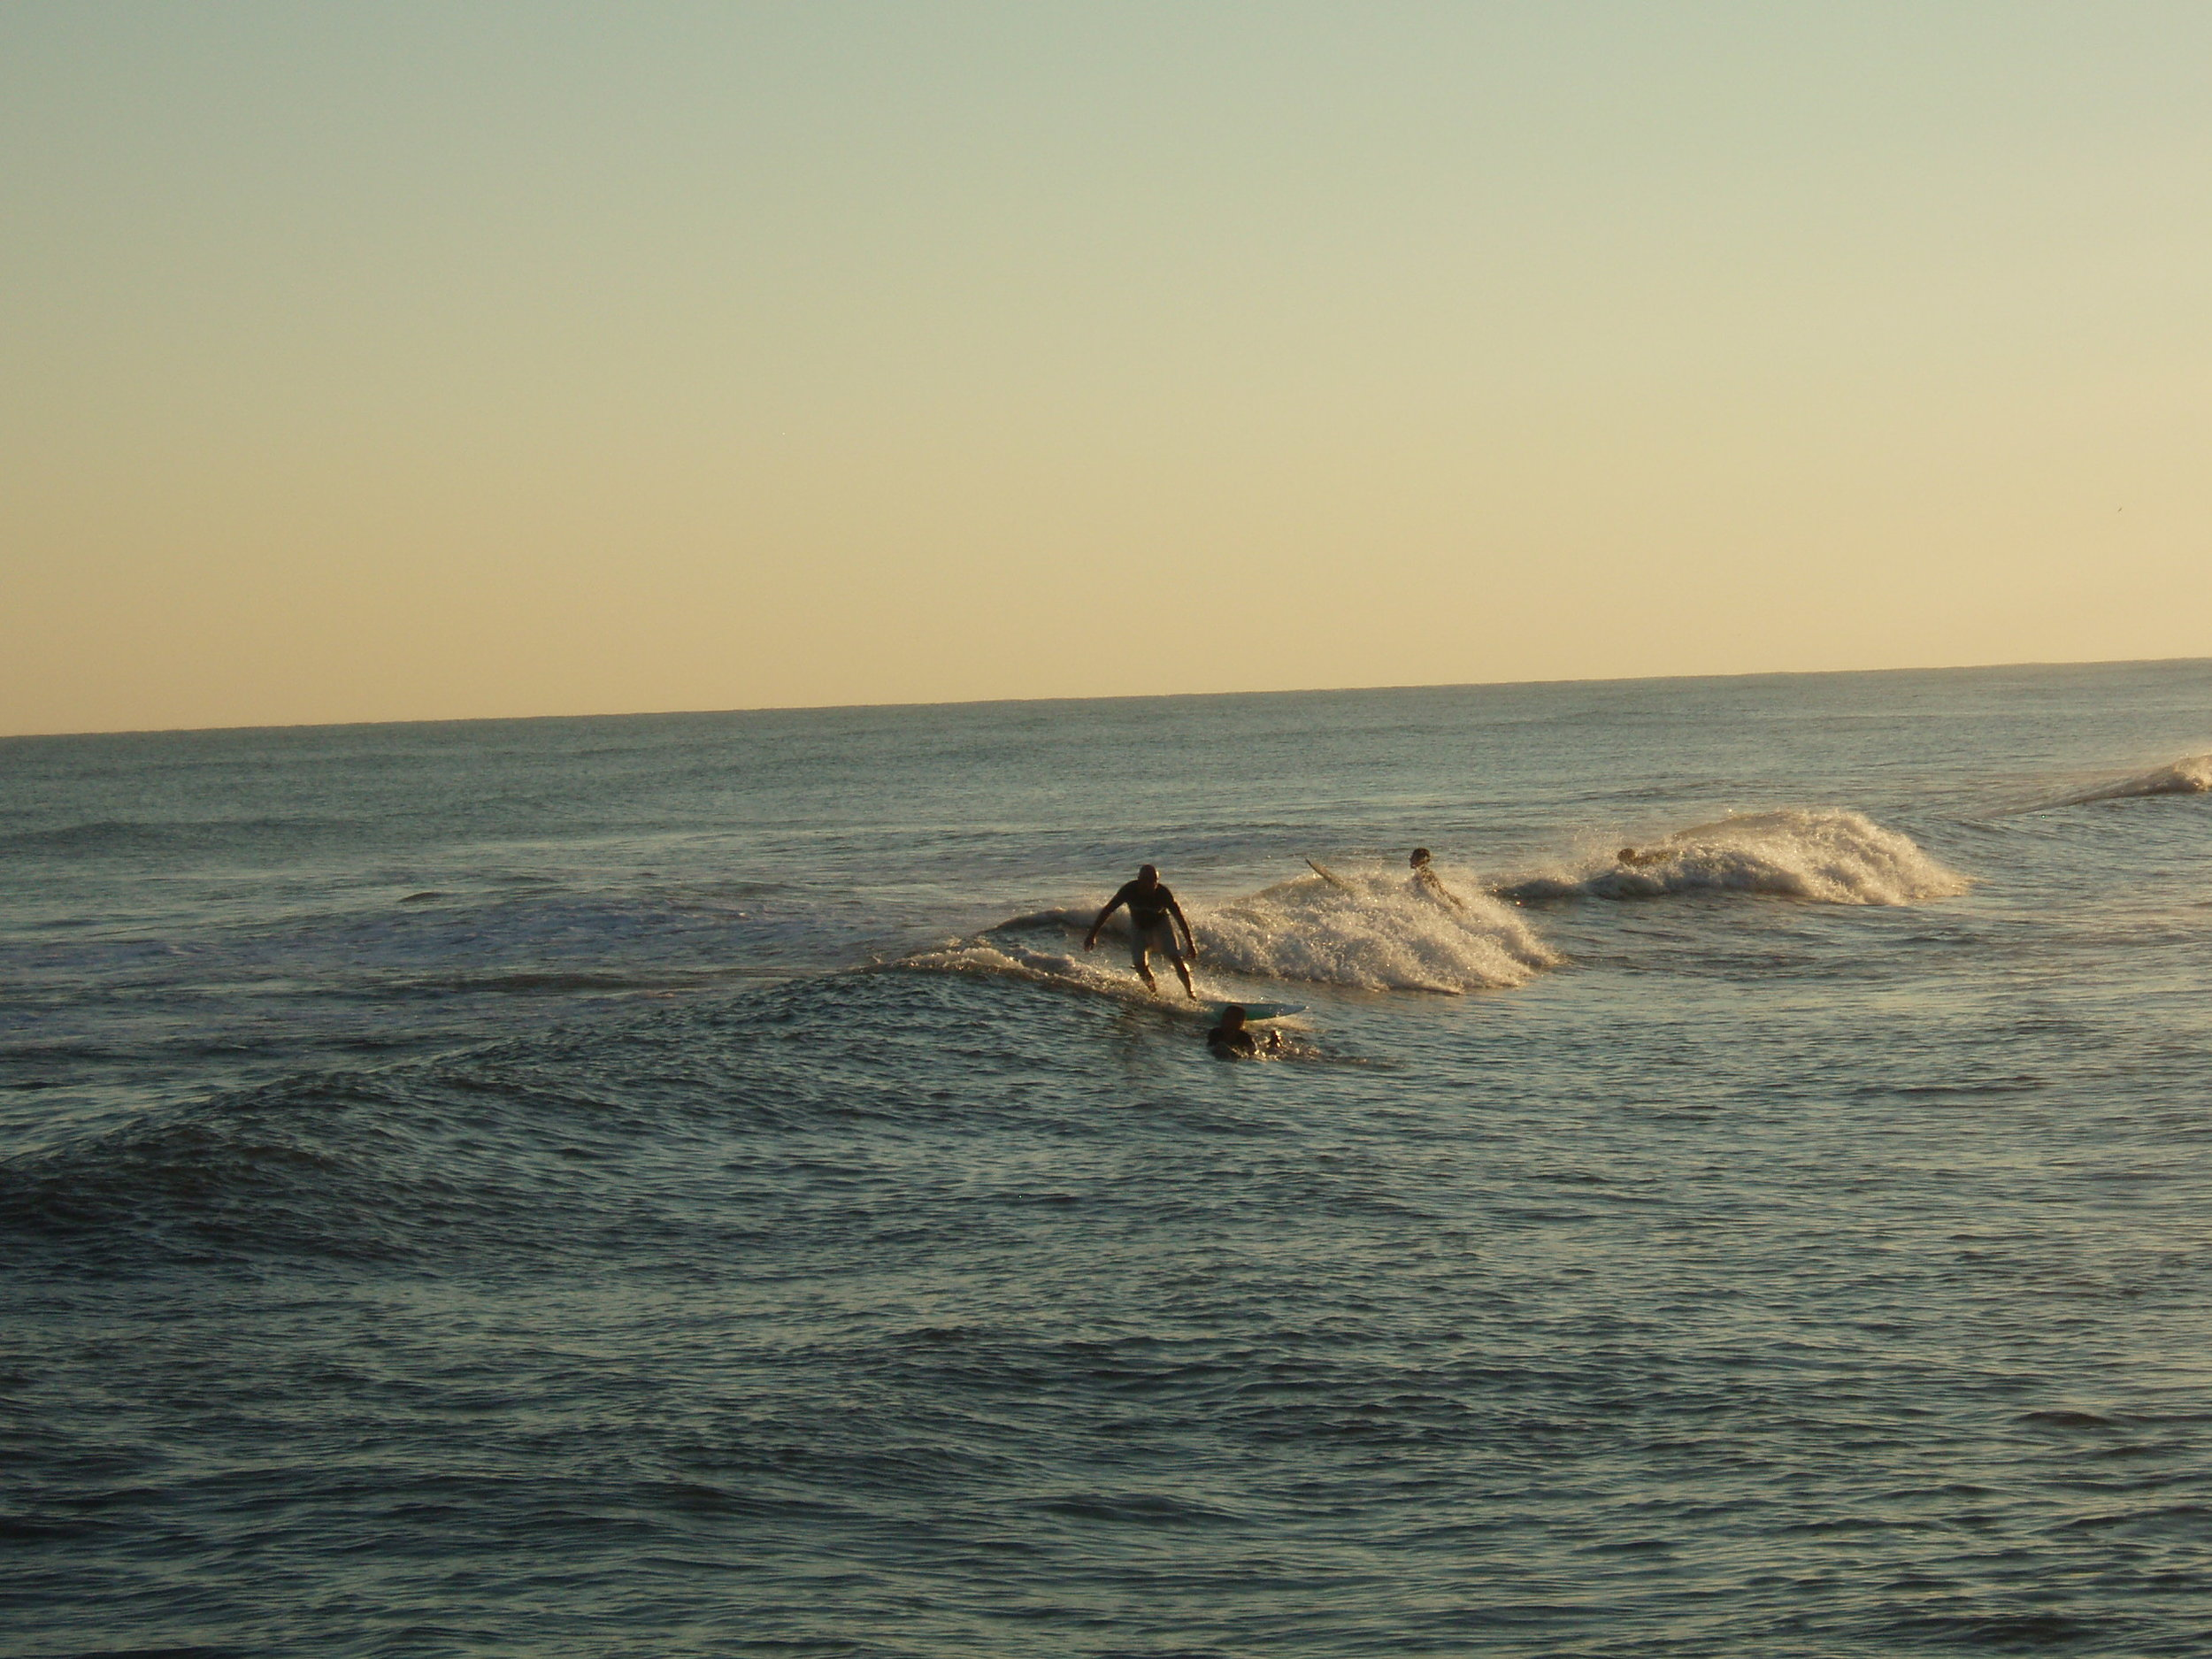 Surfing in Galveston